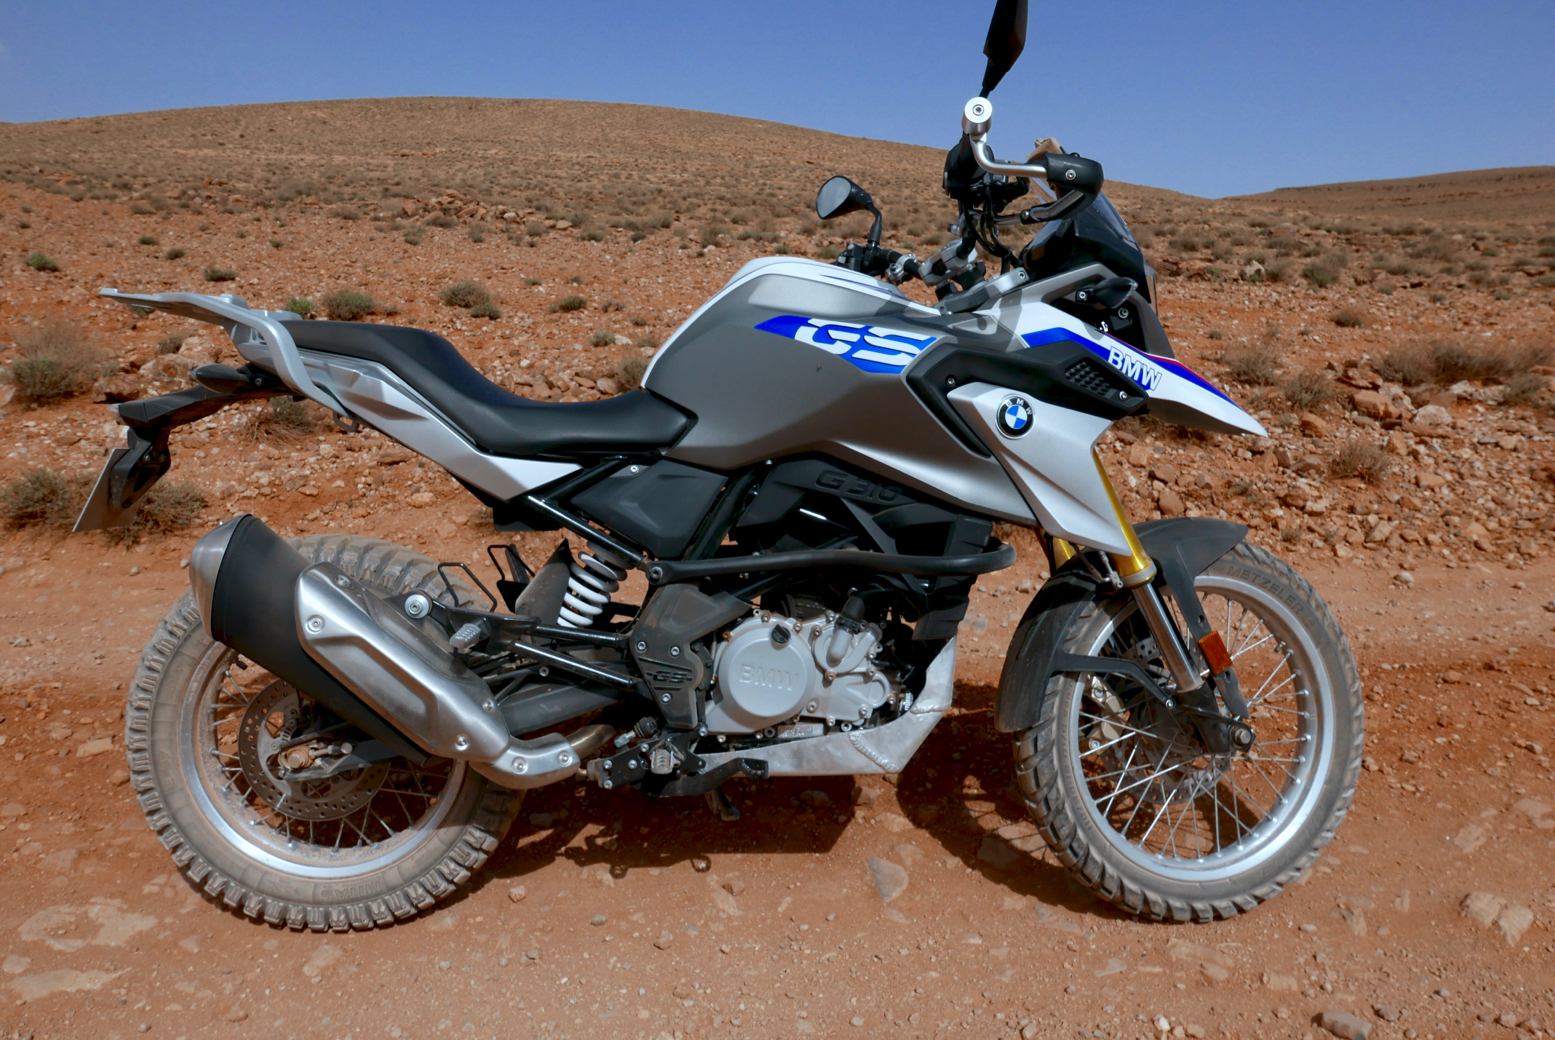 Bmw G310gs 600km In Morocco Video